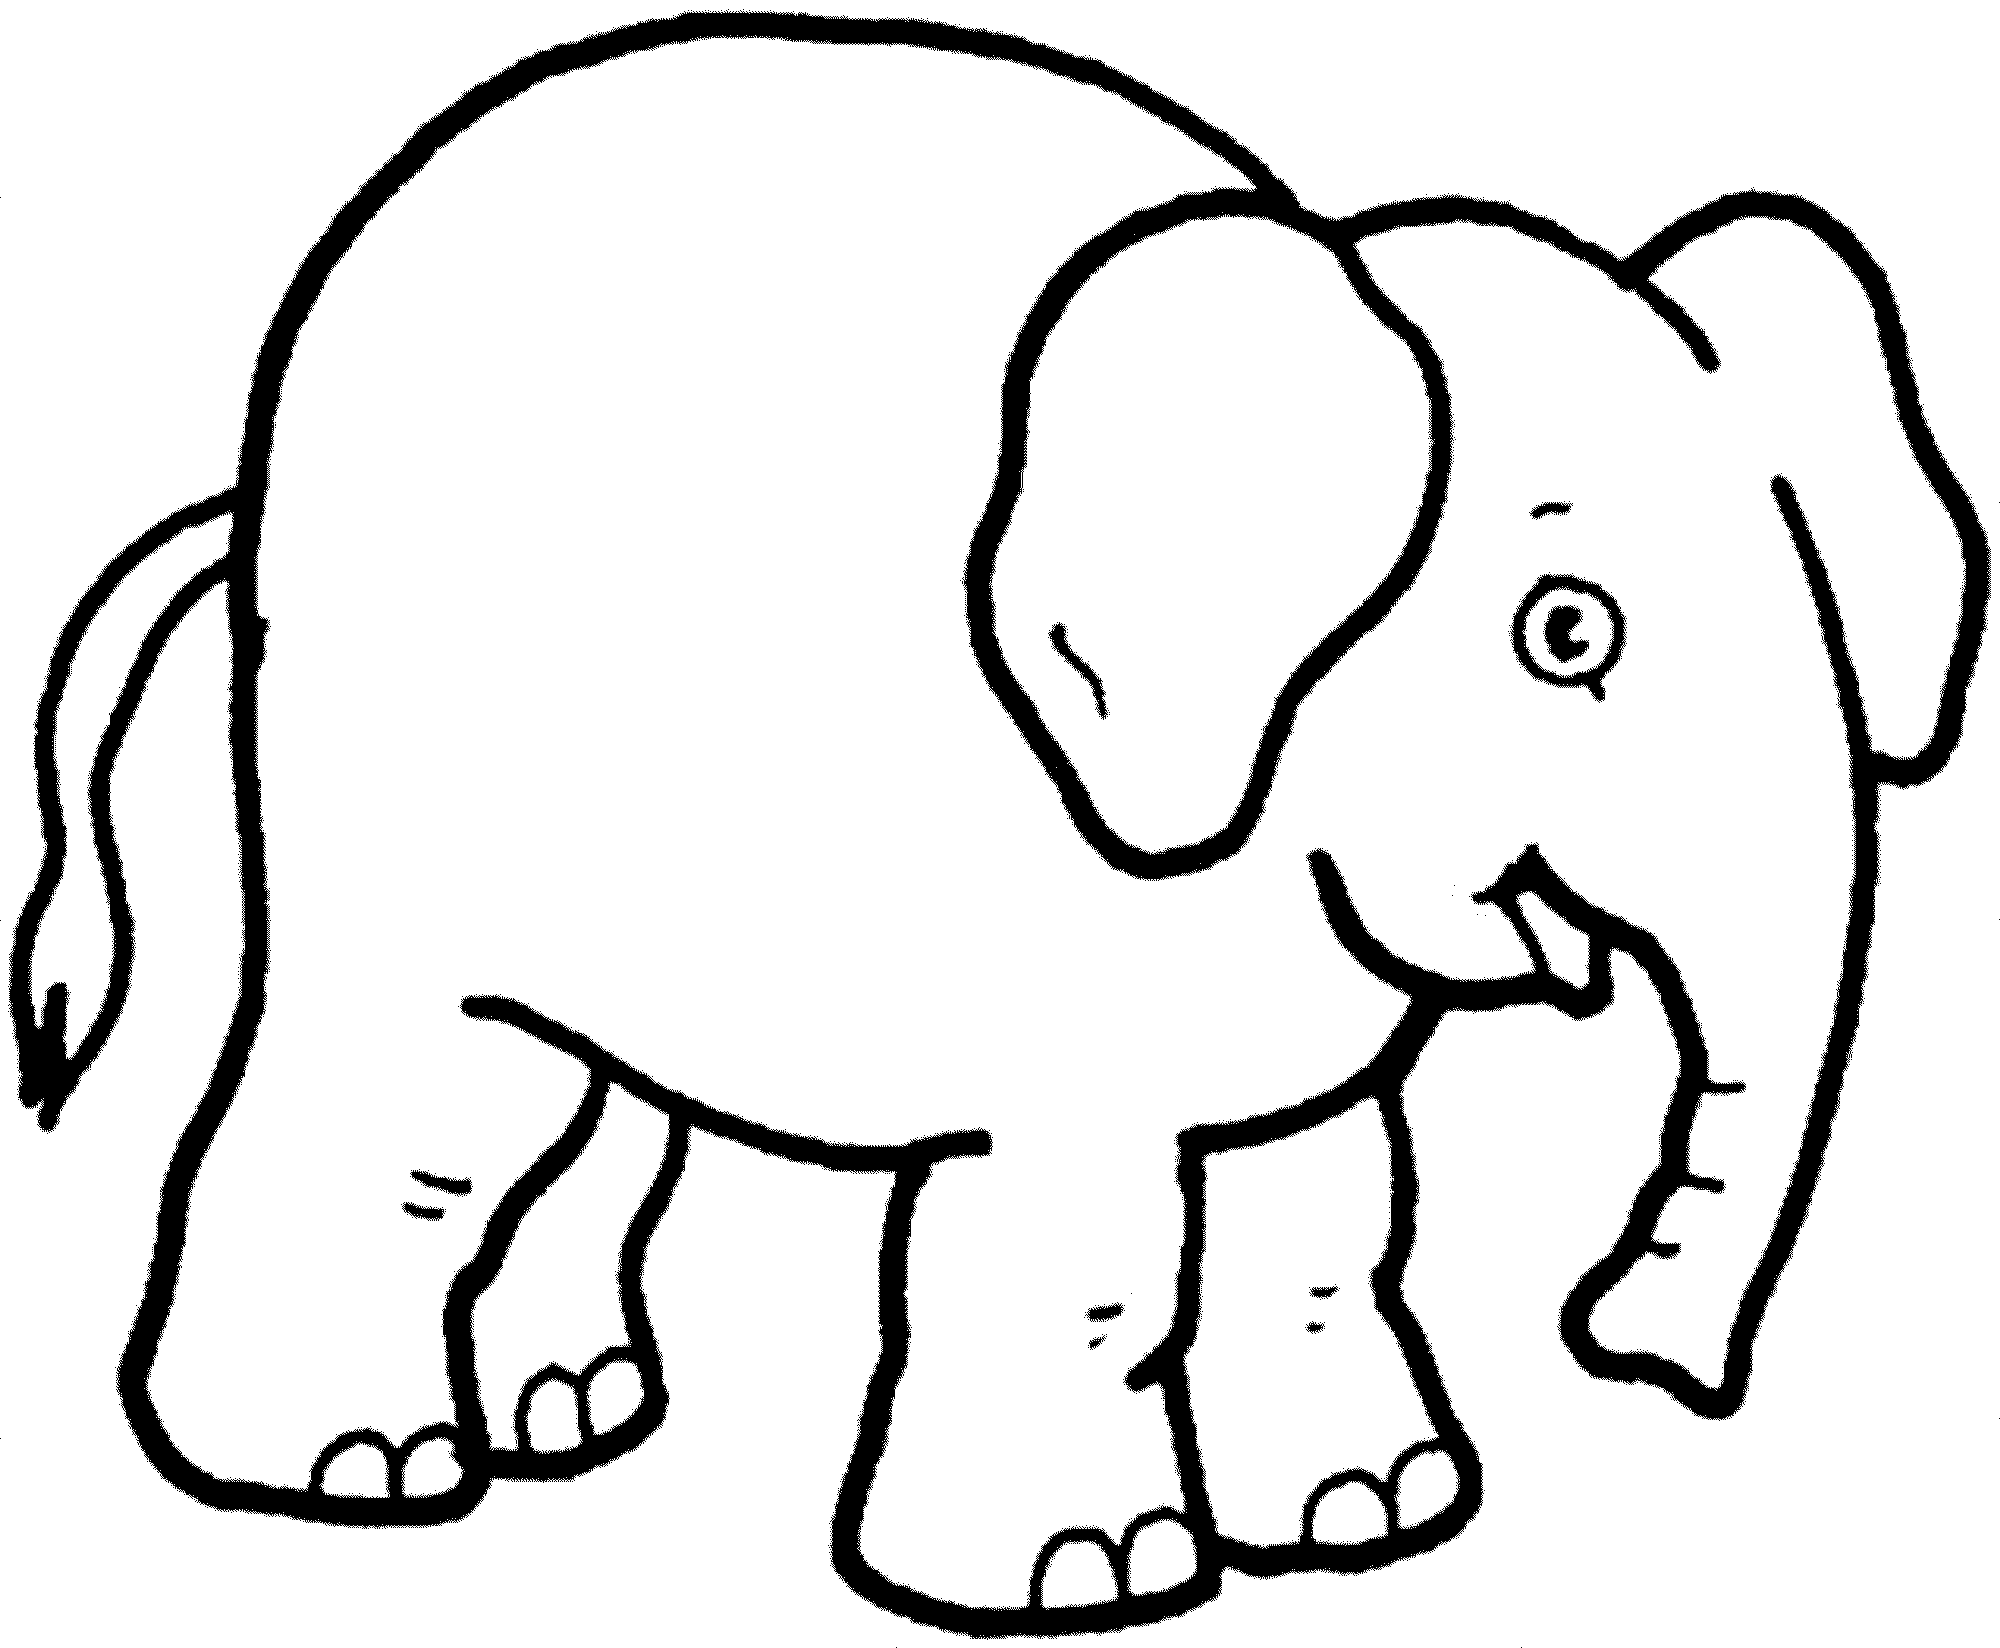 free coloring pages of elephant - photo#48